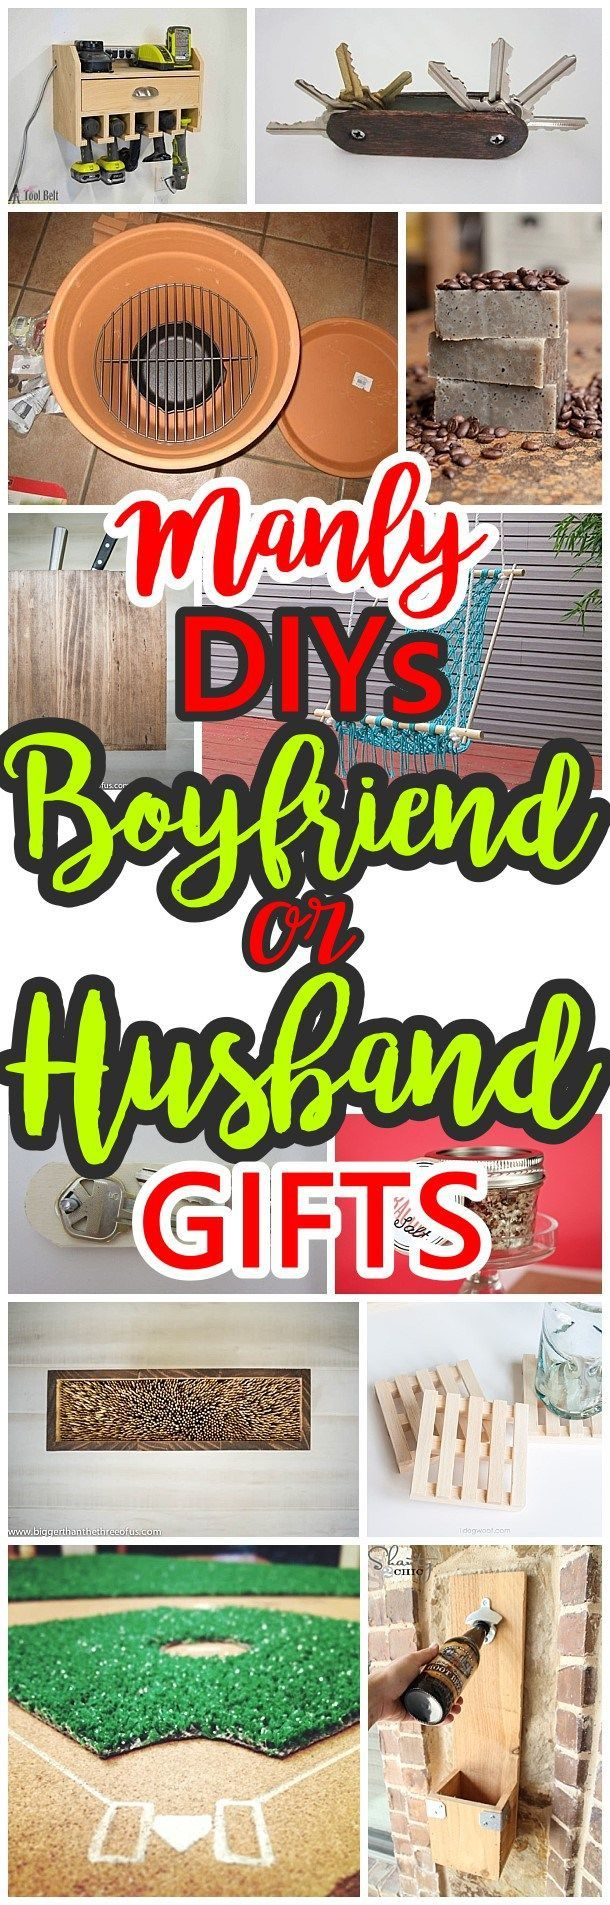 36 best gifts for him images on pinterest christmas presents awesome diy fathers day gift ideas and craft projects do it yourself manly gift ideas solutioingenieria Image collections